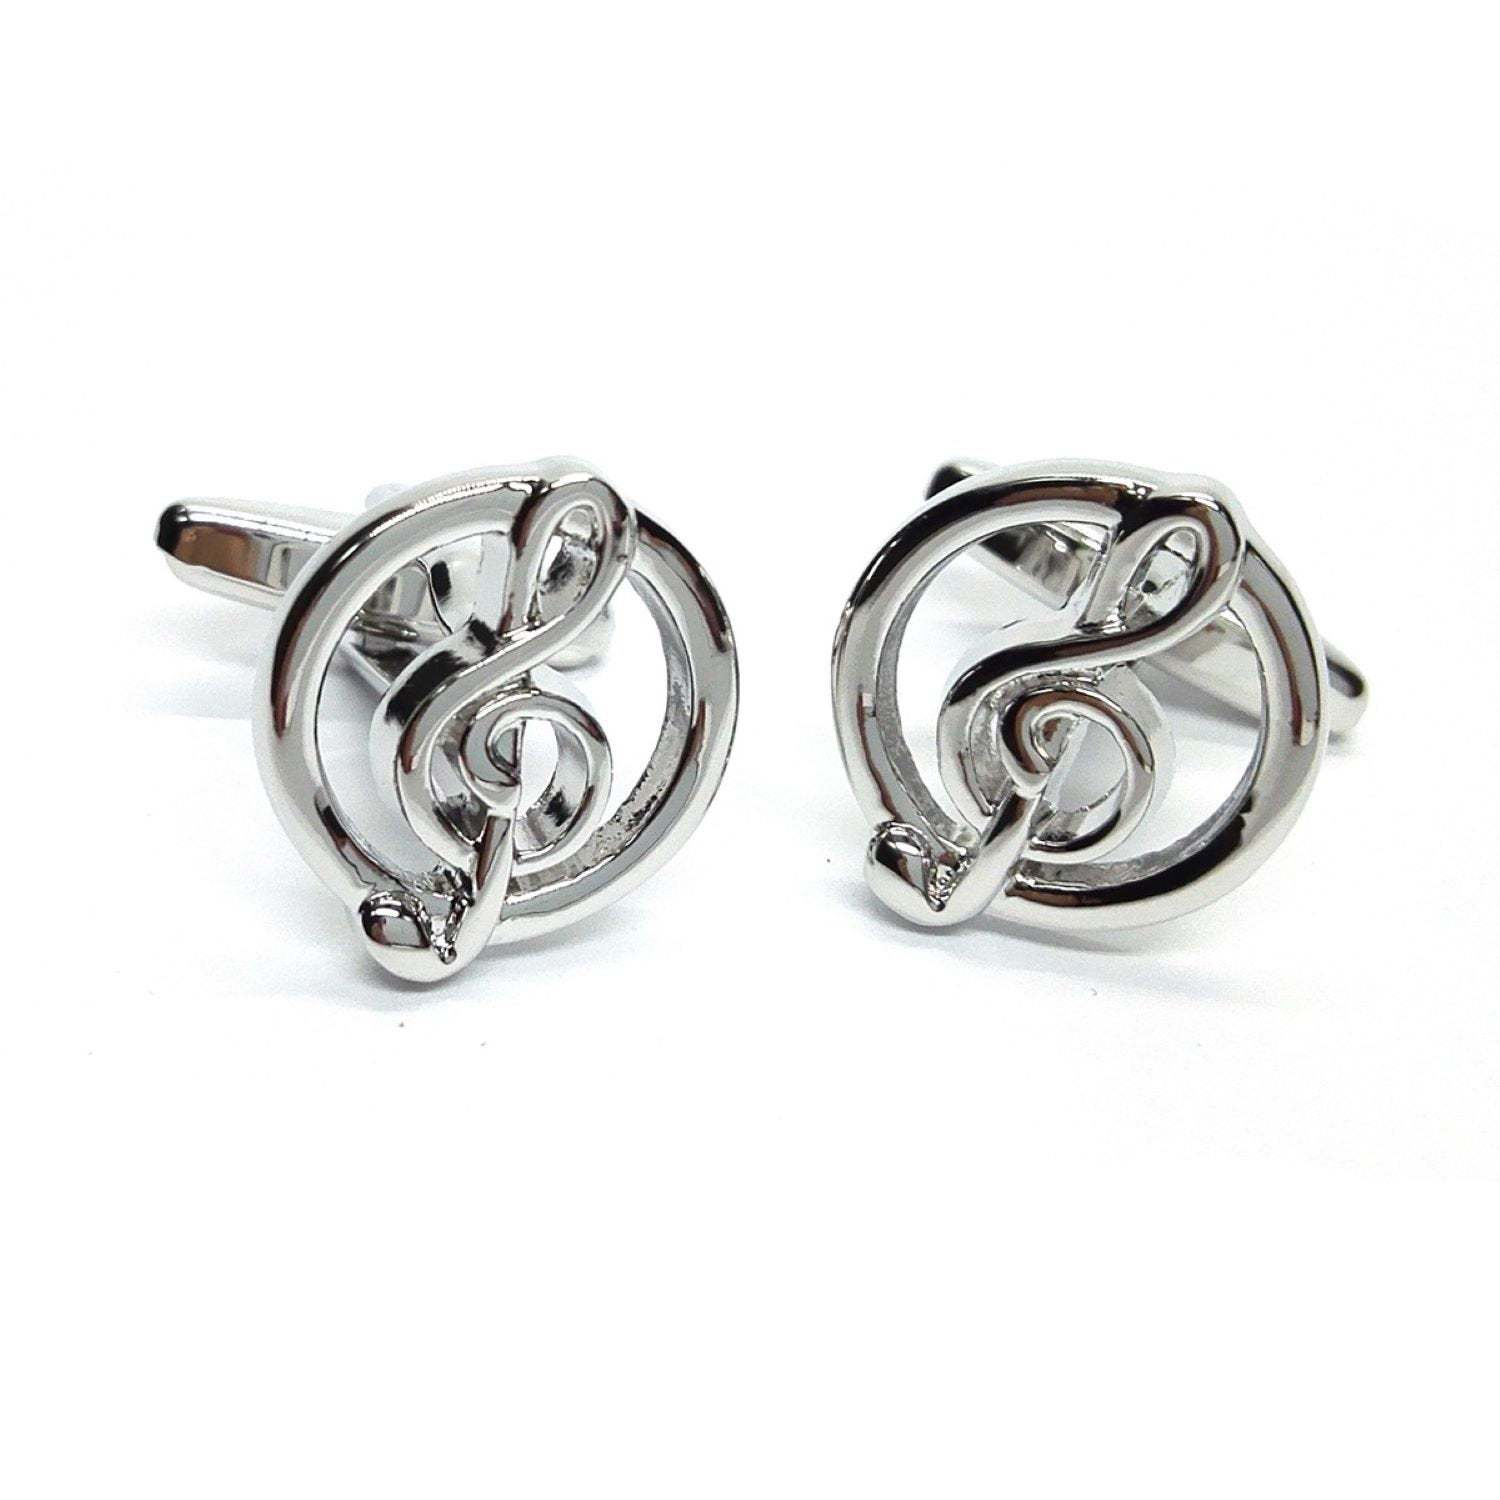 Treble Clef in Circle  music theme cufflinks gift boxed